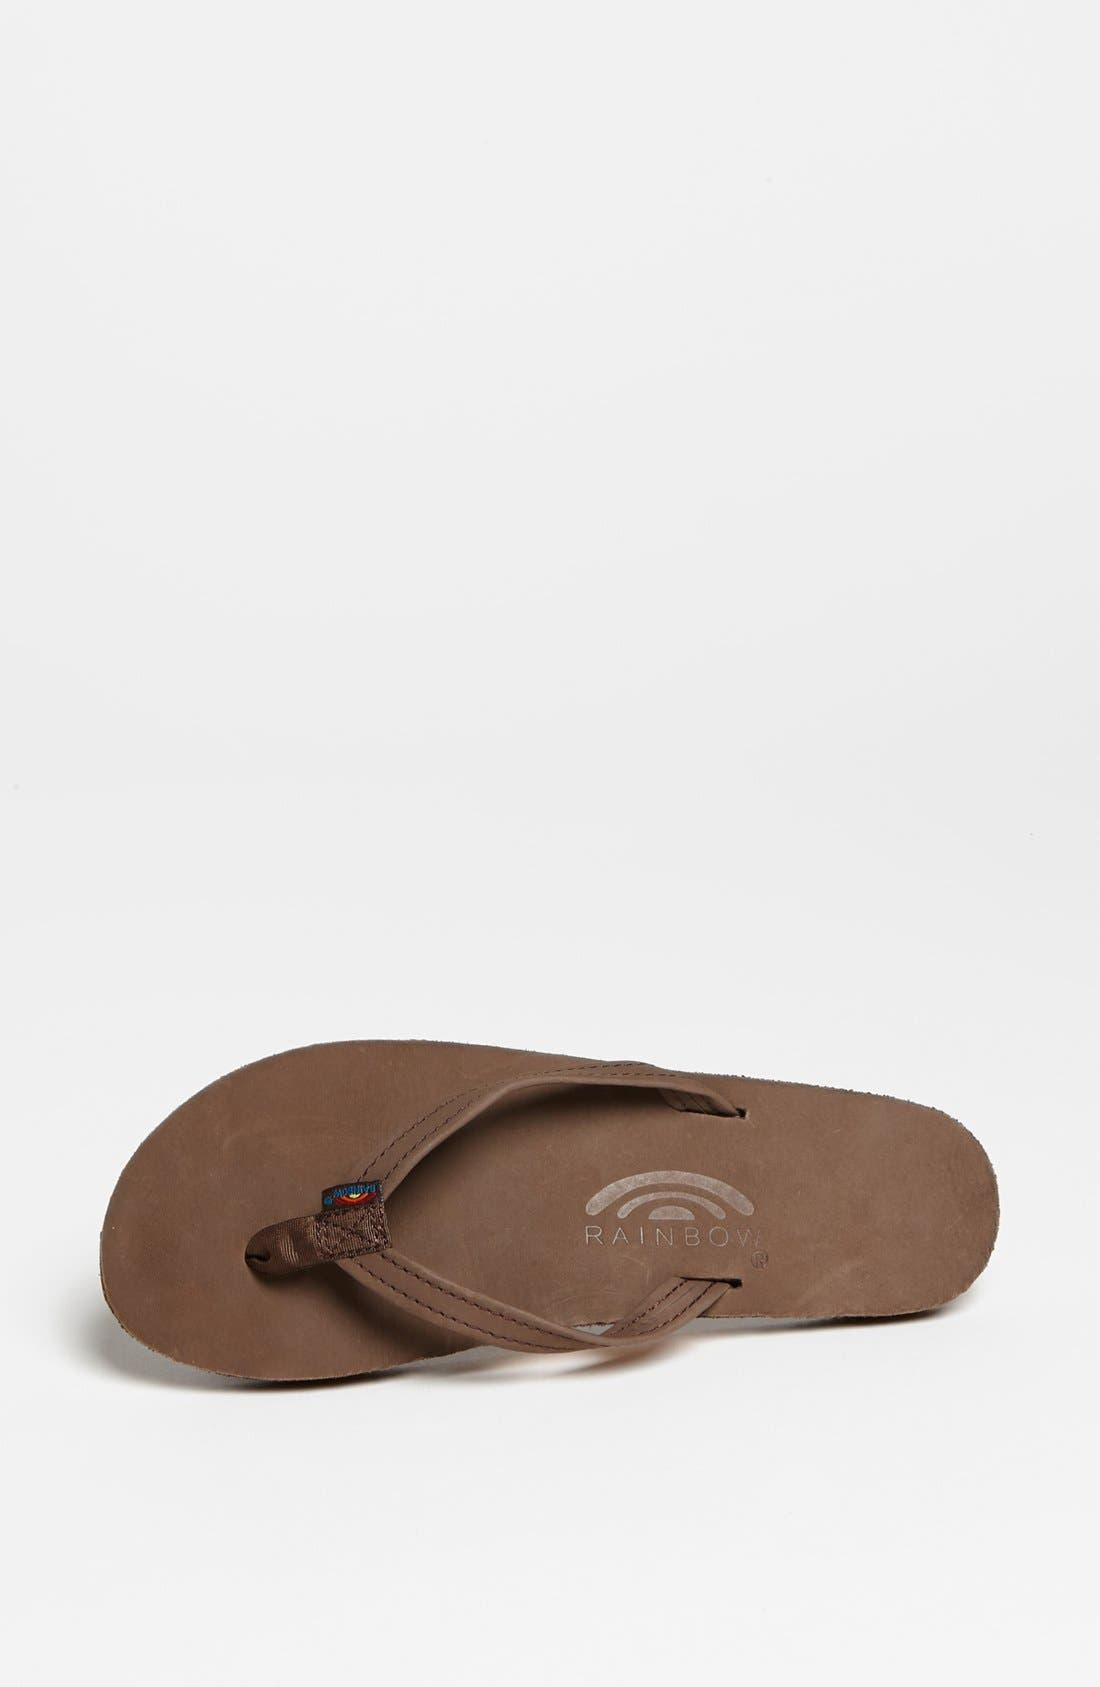 Narrow Strap Sandal,                             Alternate thumbnail 3, color,                             Expresso